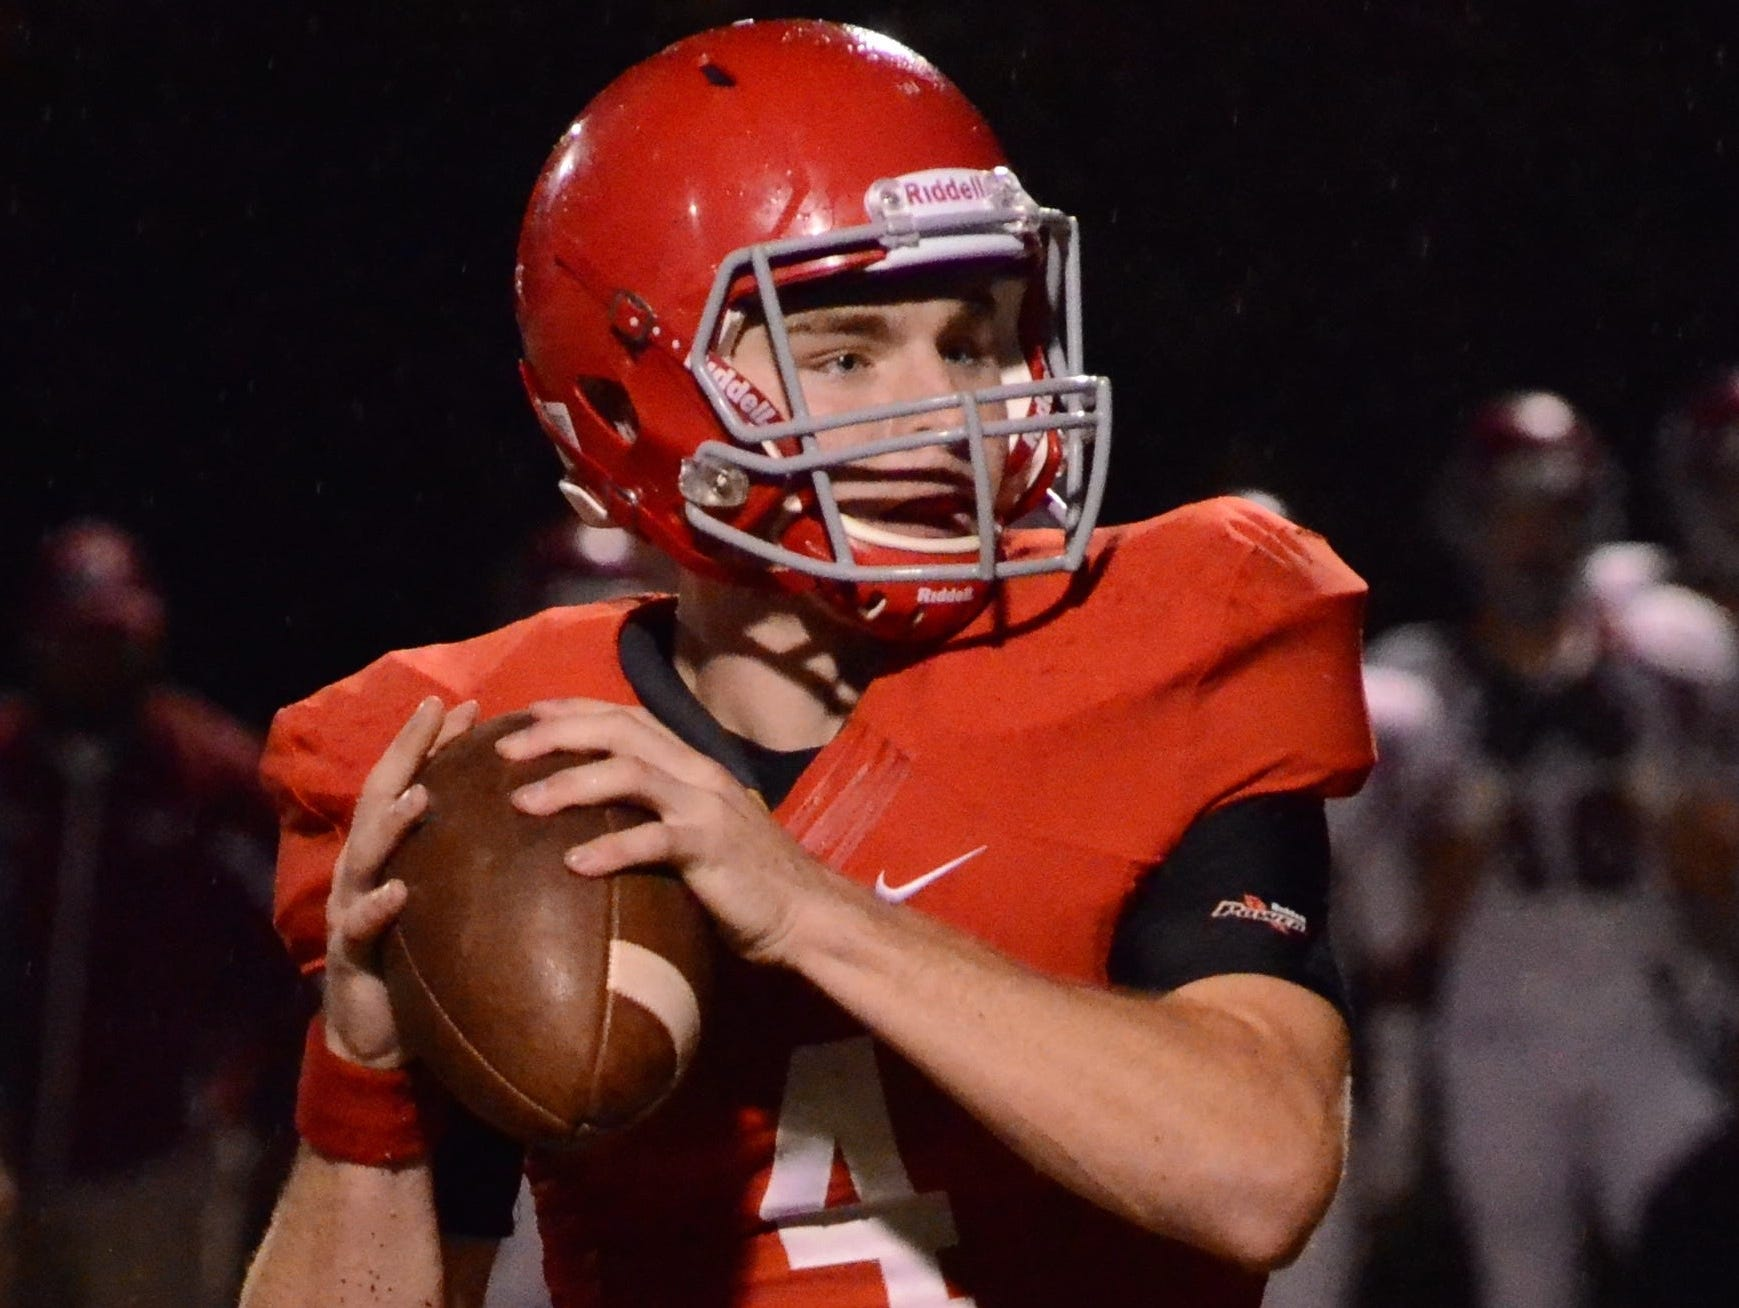 Brentwood Academy's Jeremiah Oatsvall ran for five touchdowns and had 425 yards from scrimmage, including 253 yards passing against MBA on Friday.